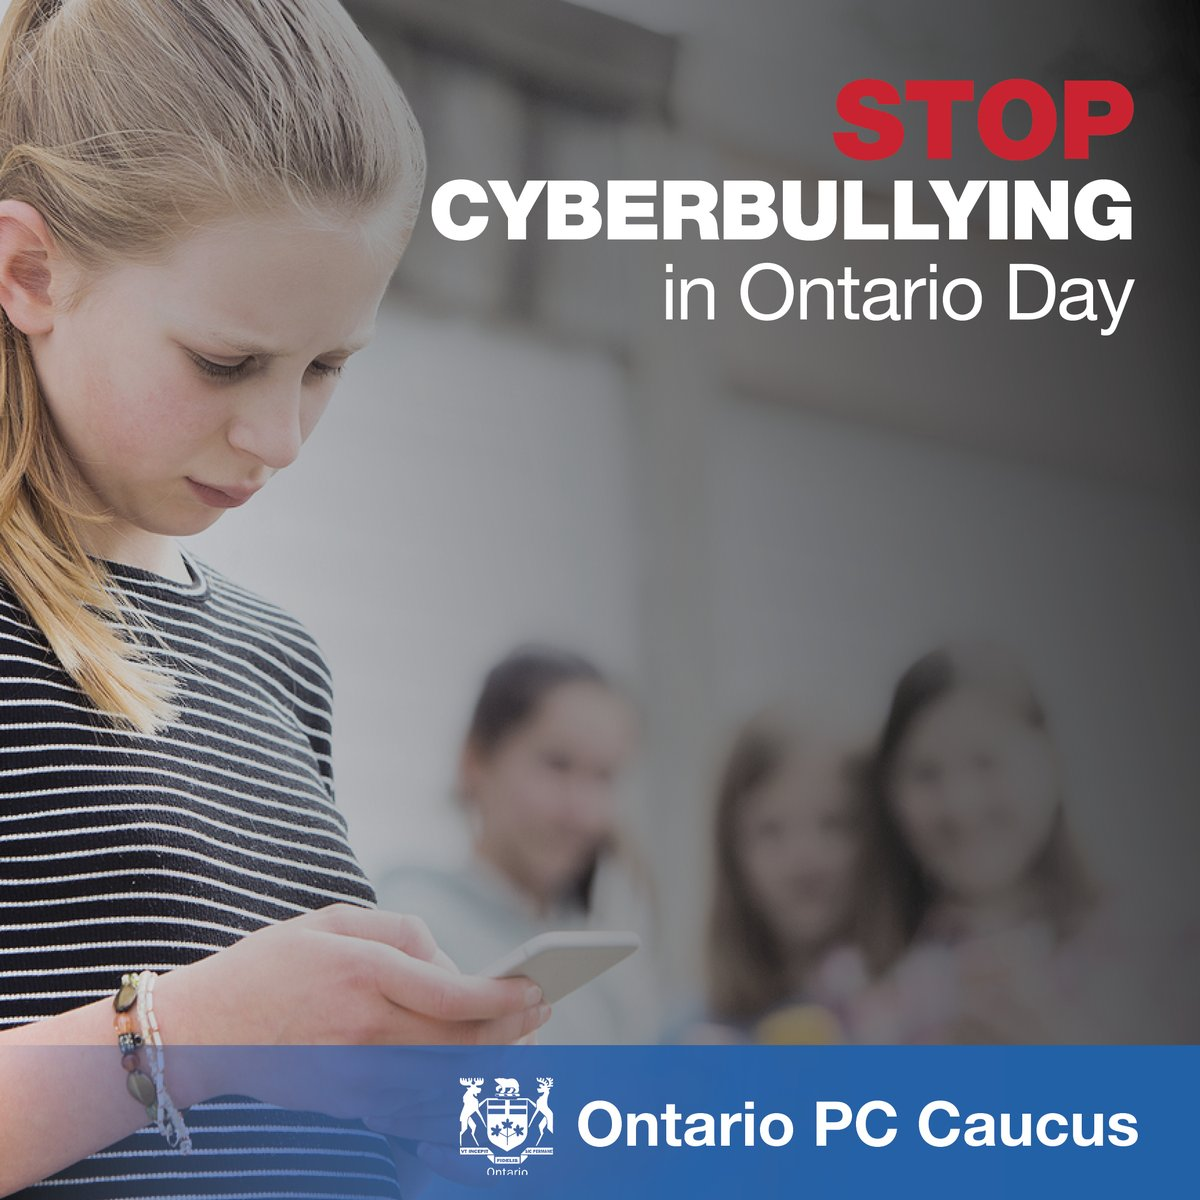 On Stop Cyberbullying in Ontario Day, we can do our part to educate ourselves and our loved ones on how to identify and prevent cyberbullying. Learn more: https://t.co/Dd1DRFPlPp #StopCyberbullyingDayON https://t.co/SkhoHqstHq